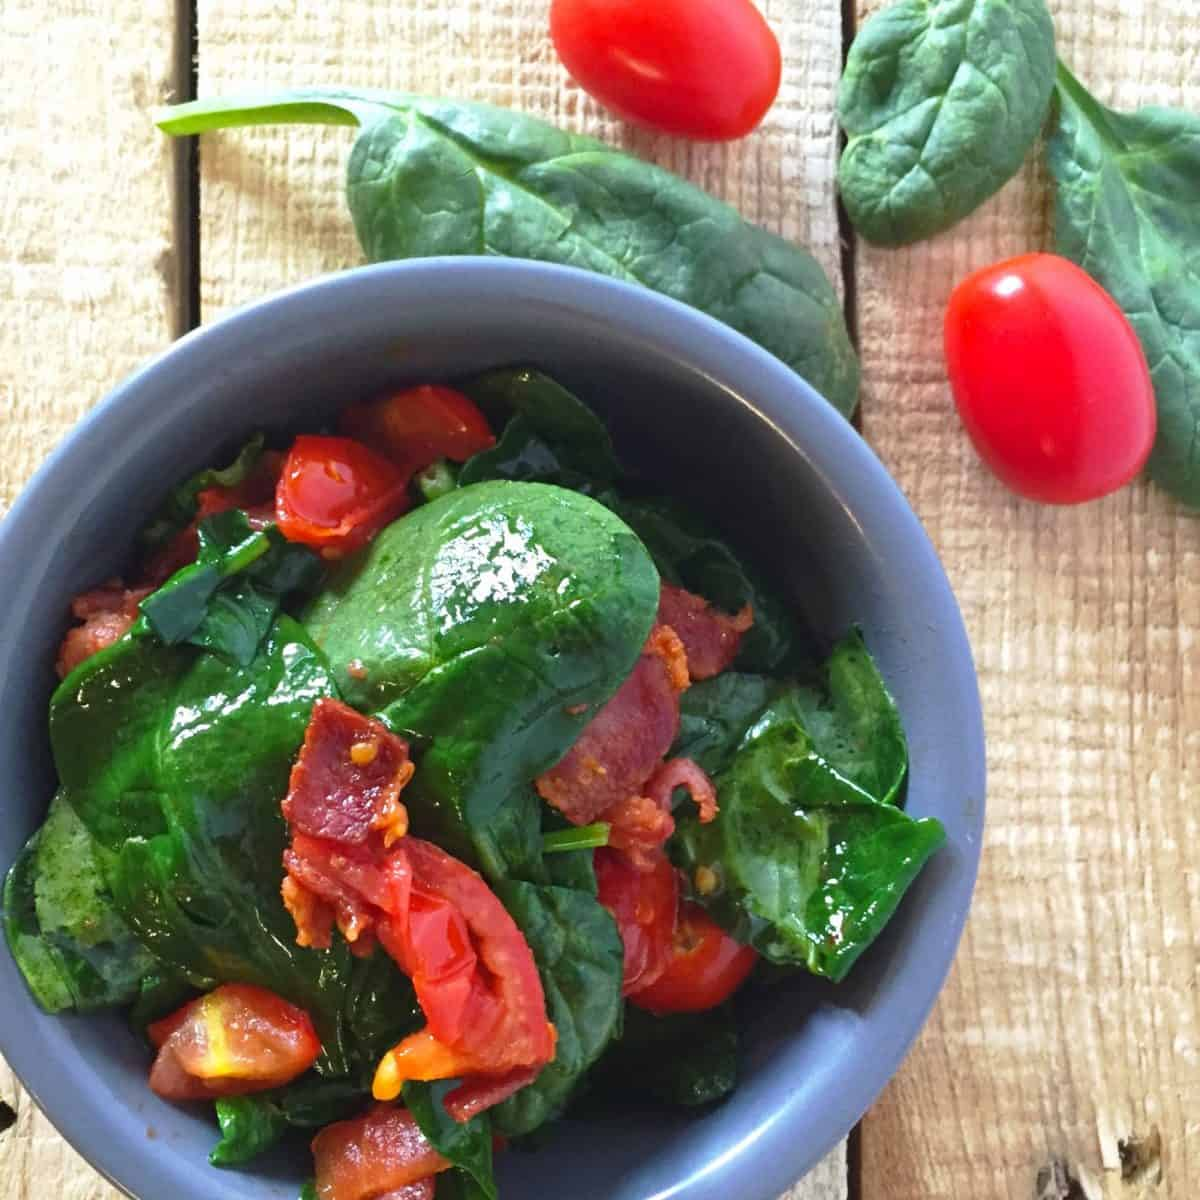 BLT inspired Spinach Side Dish